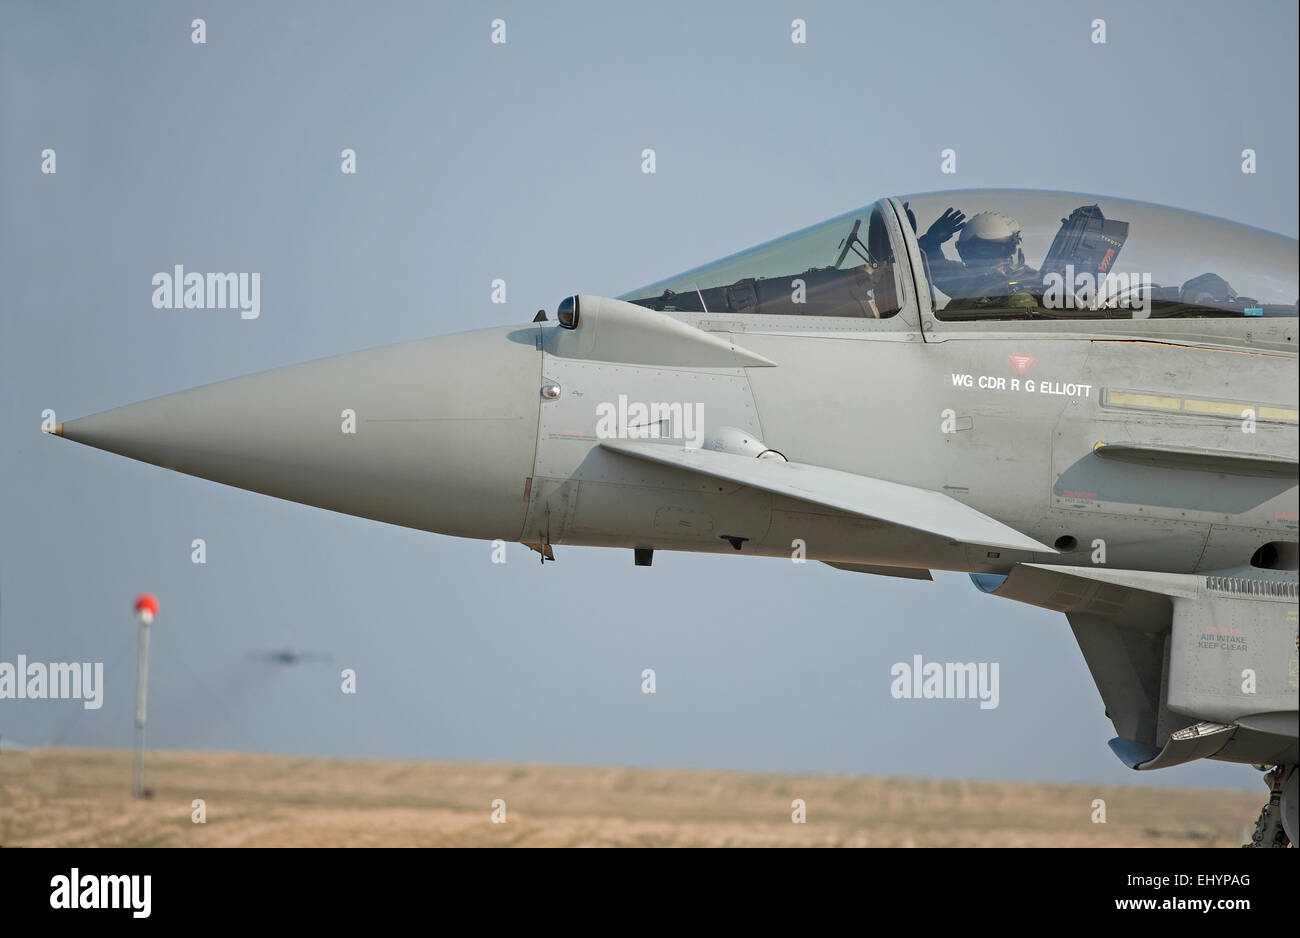 A friendly wave from this Eurofighter FRG4 Pilot as he taxies towards the 05 runway prior to take off.  SCO 9653. - Stock Image